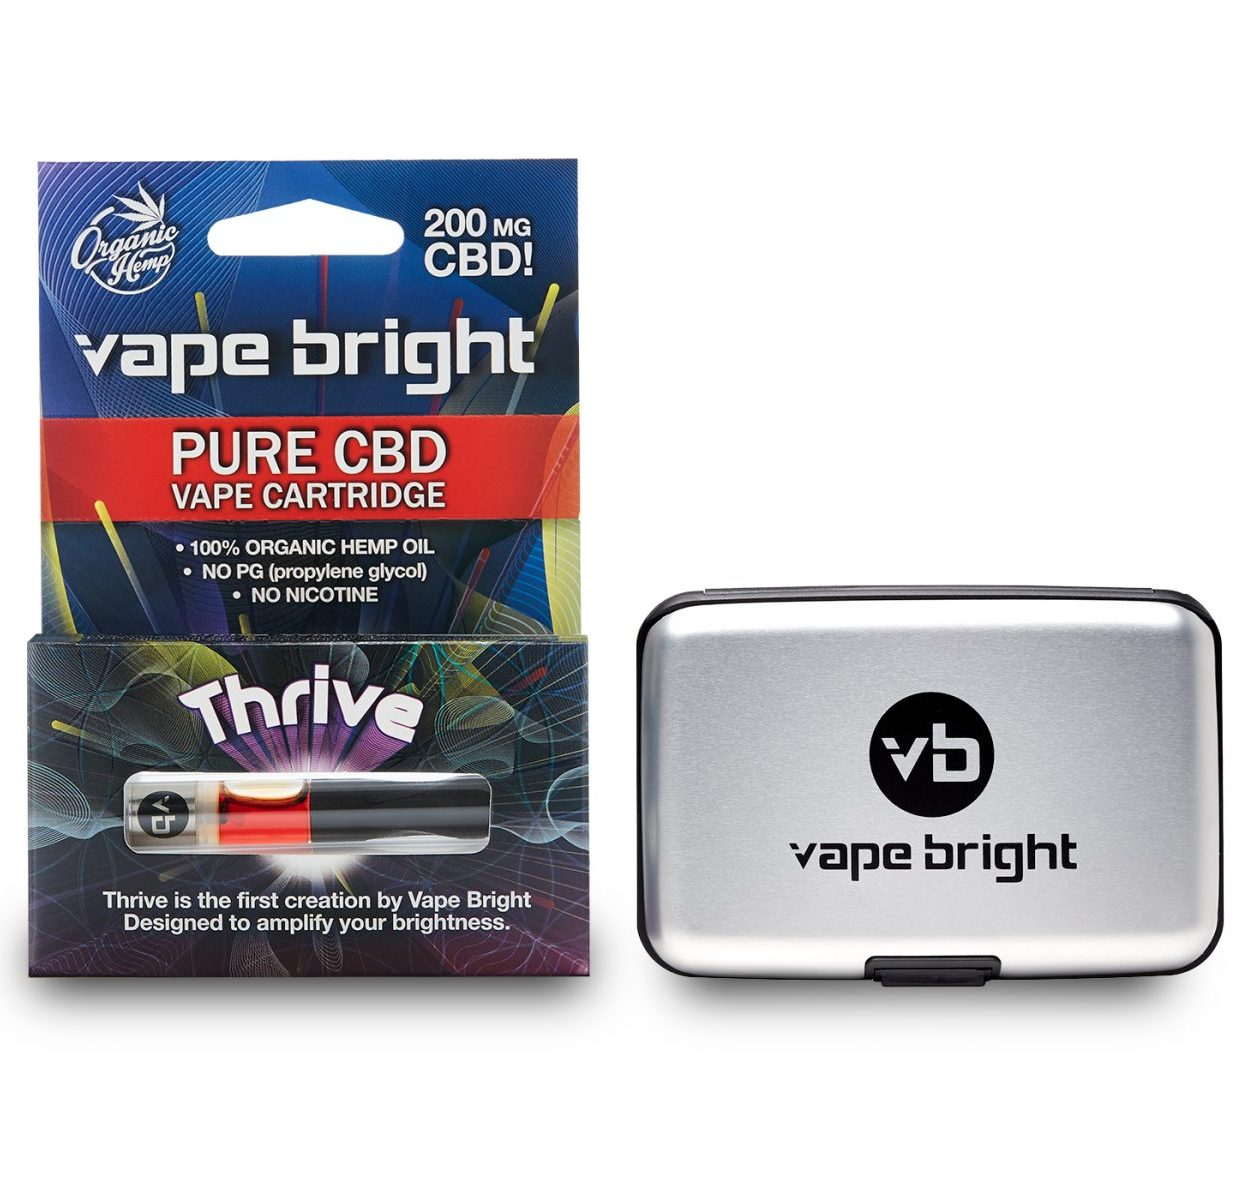 Vape Bright Affiliate Program